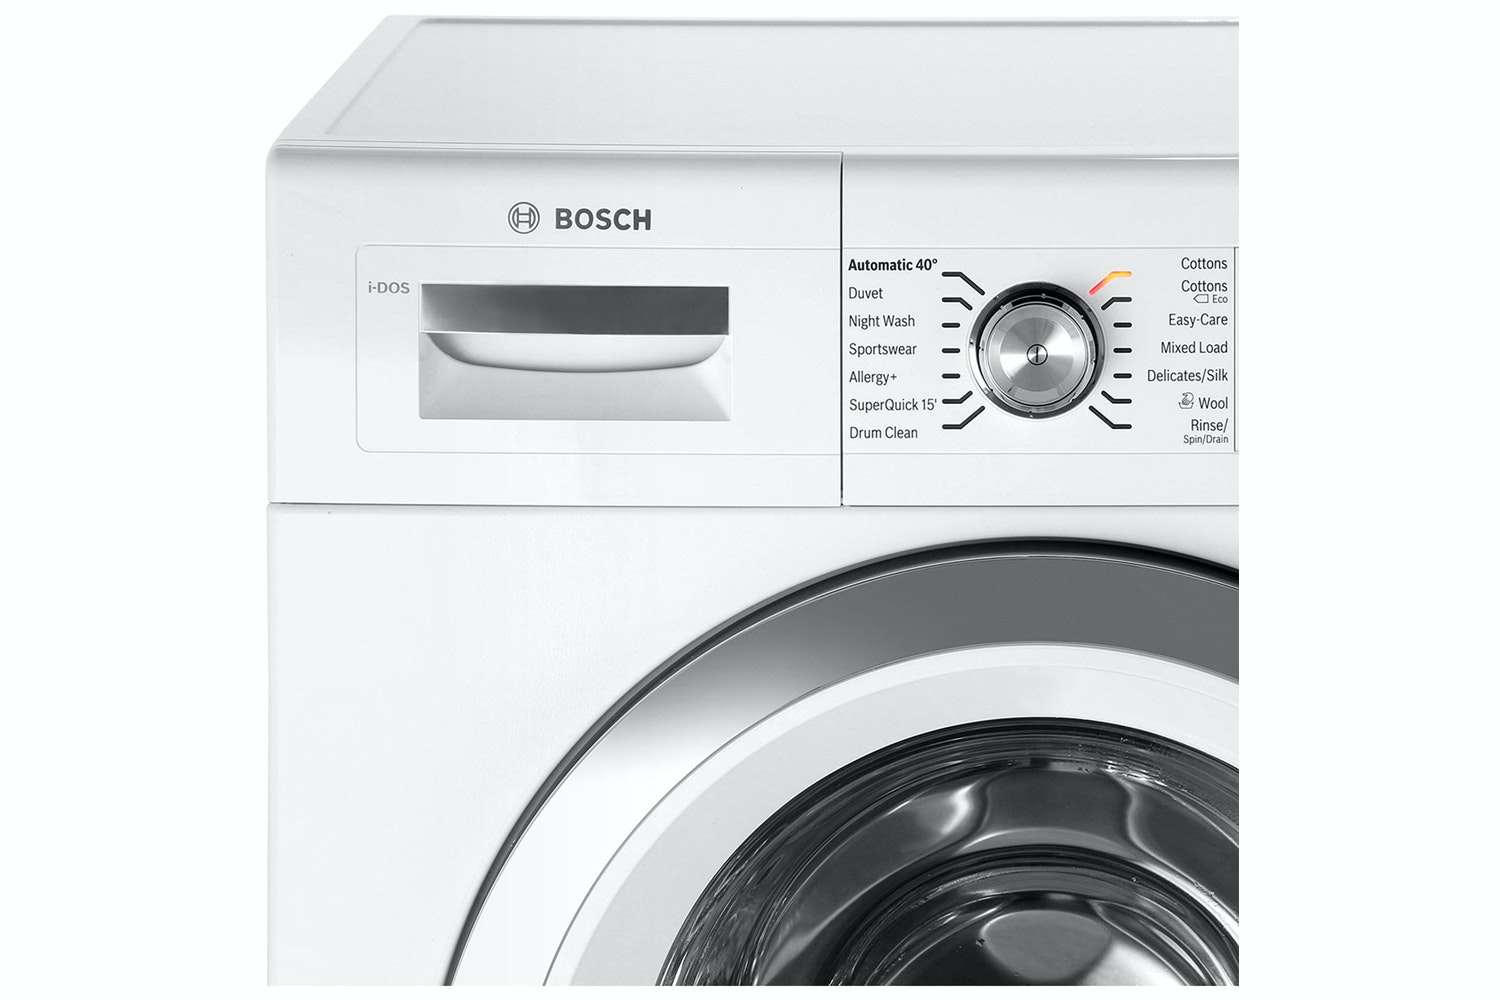 Bosch 9kg IDOS Washing Machine | WAWH8660GB